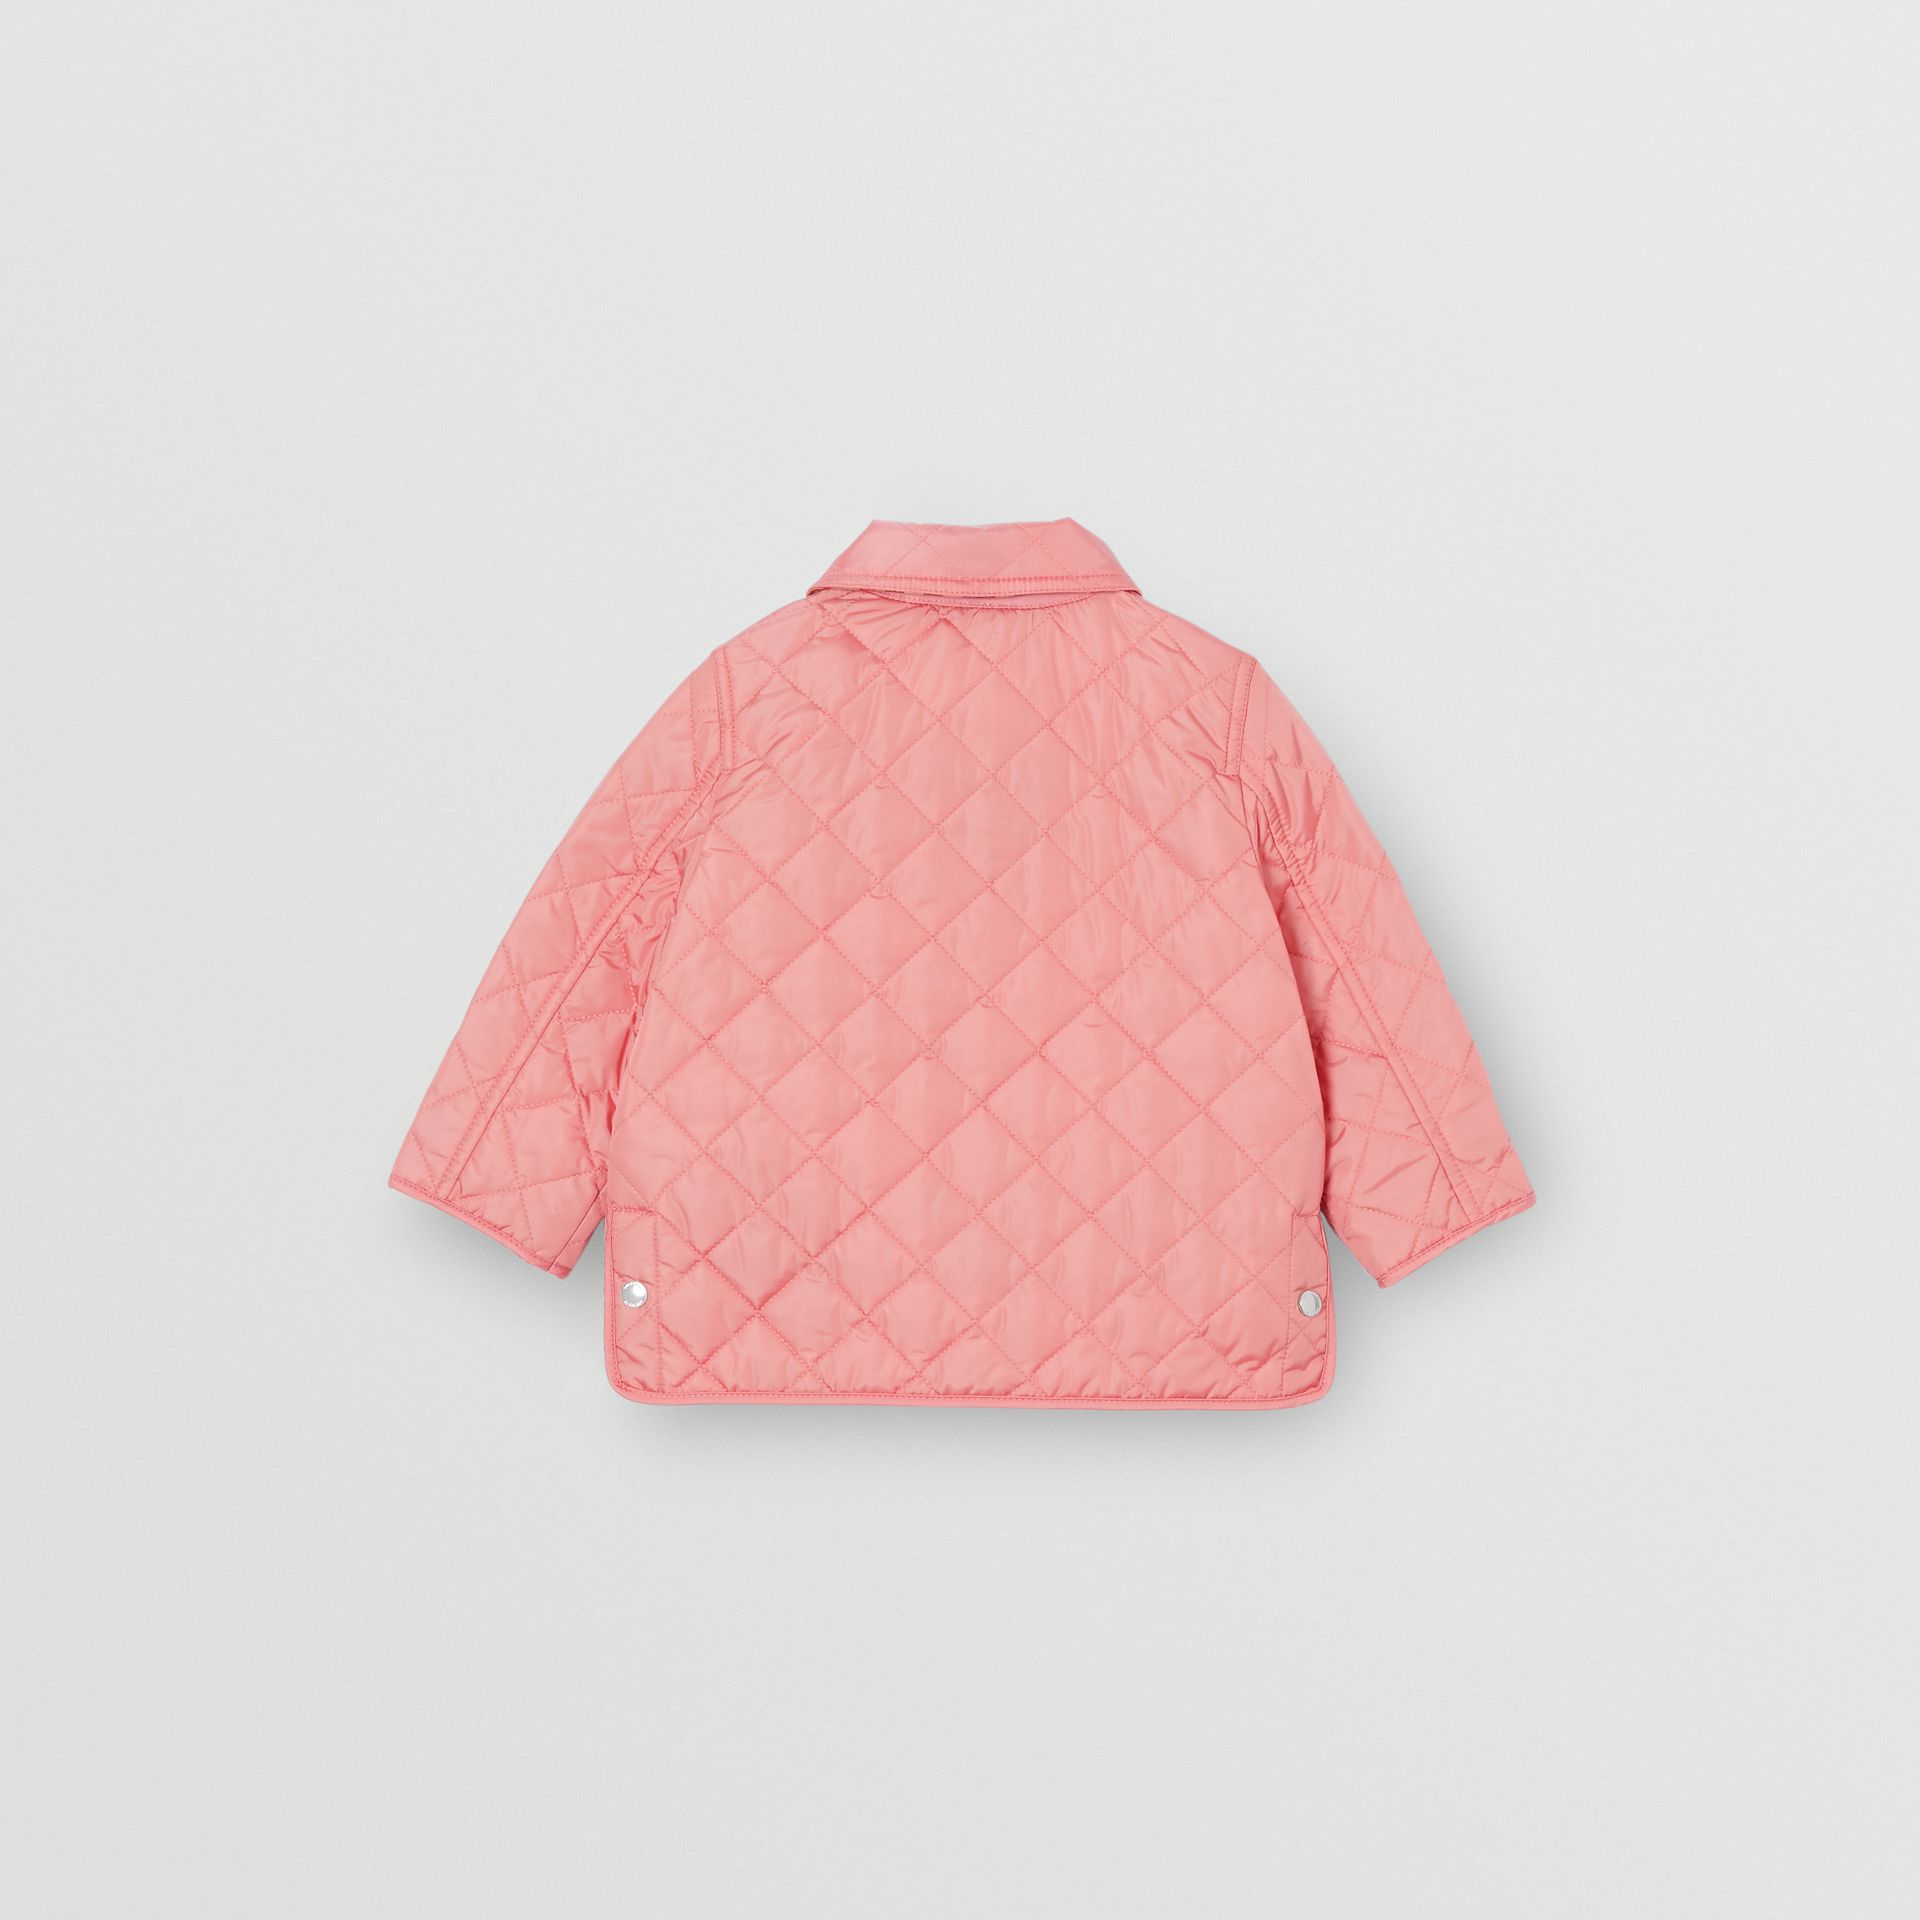 Lightweight Diamond Quilted Jacket in Dusty Pink - Children | Burberry Australia - gallery image 3